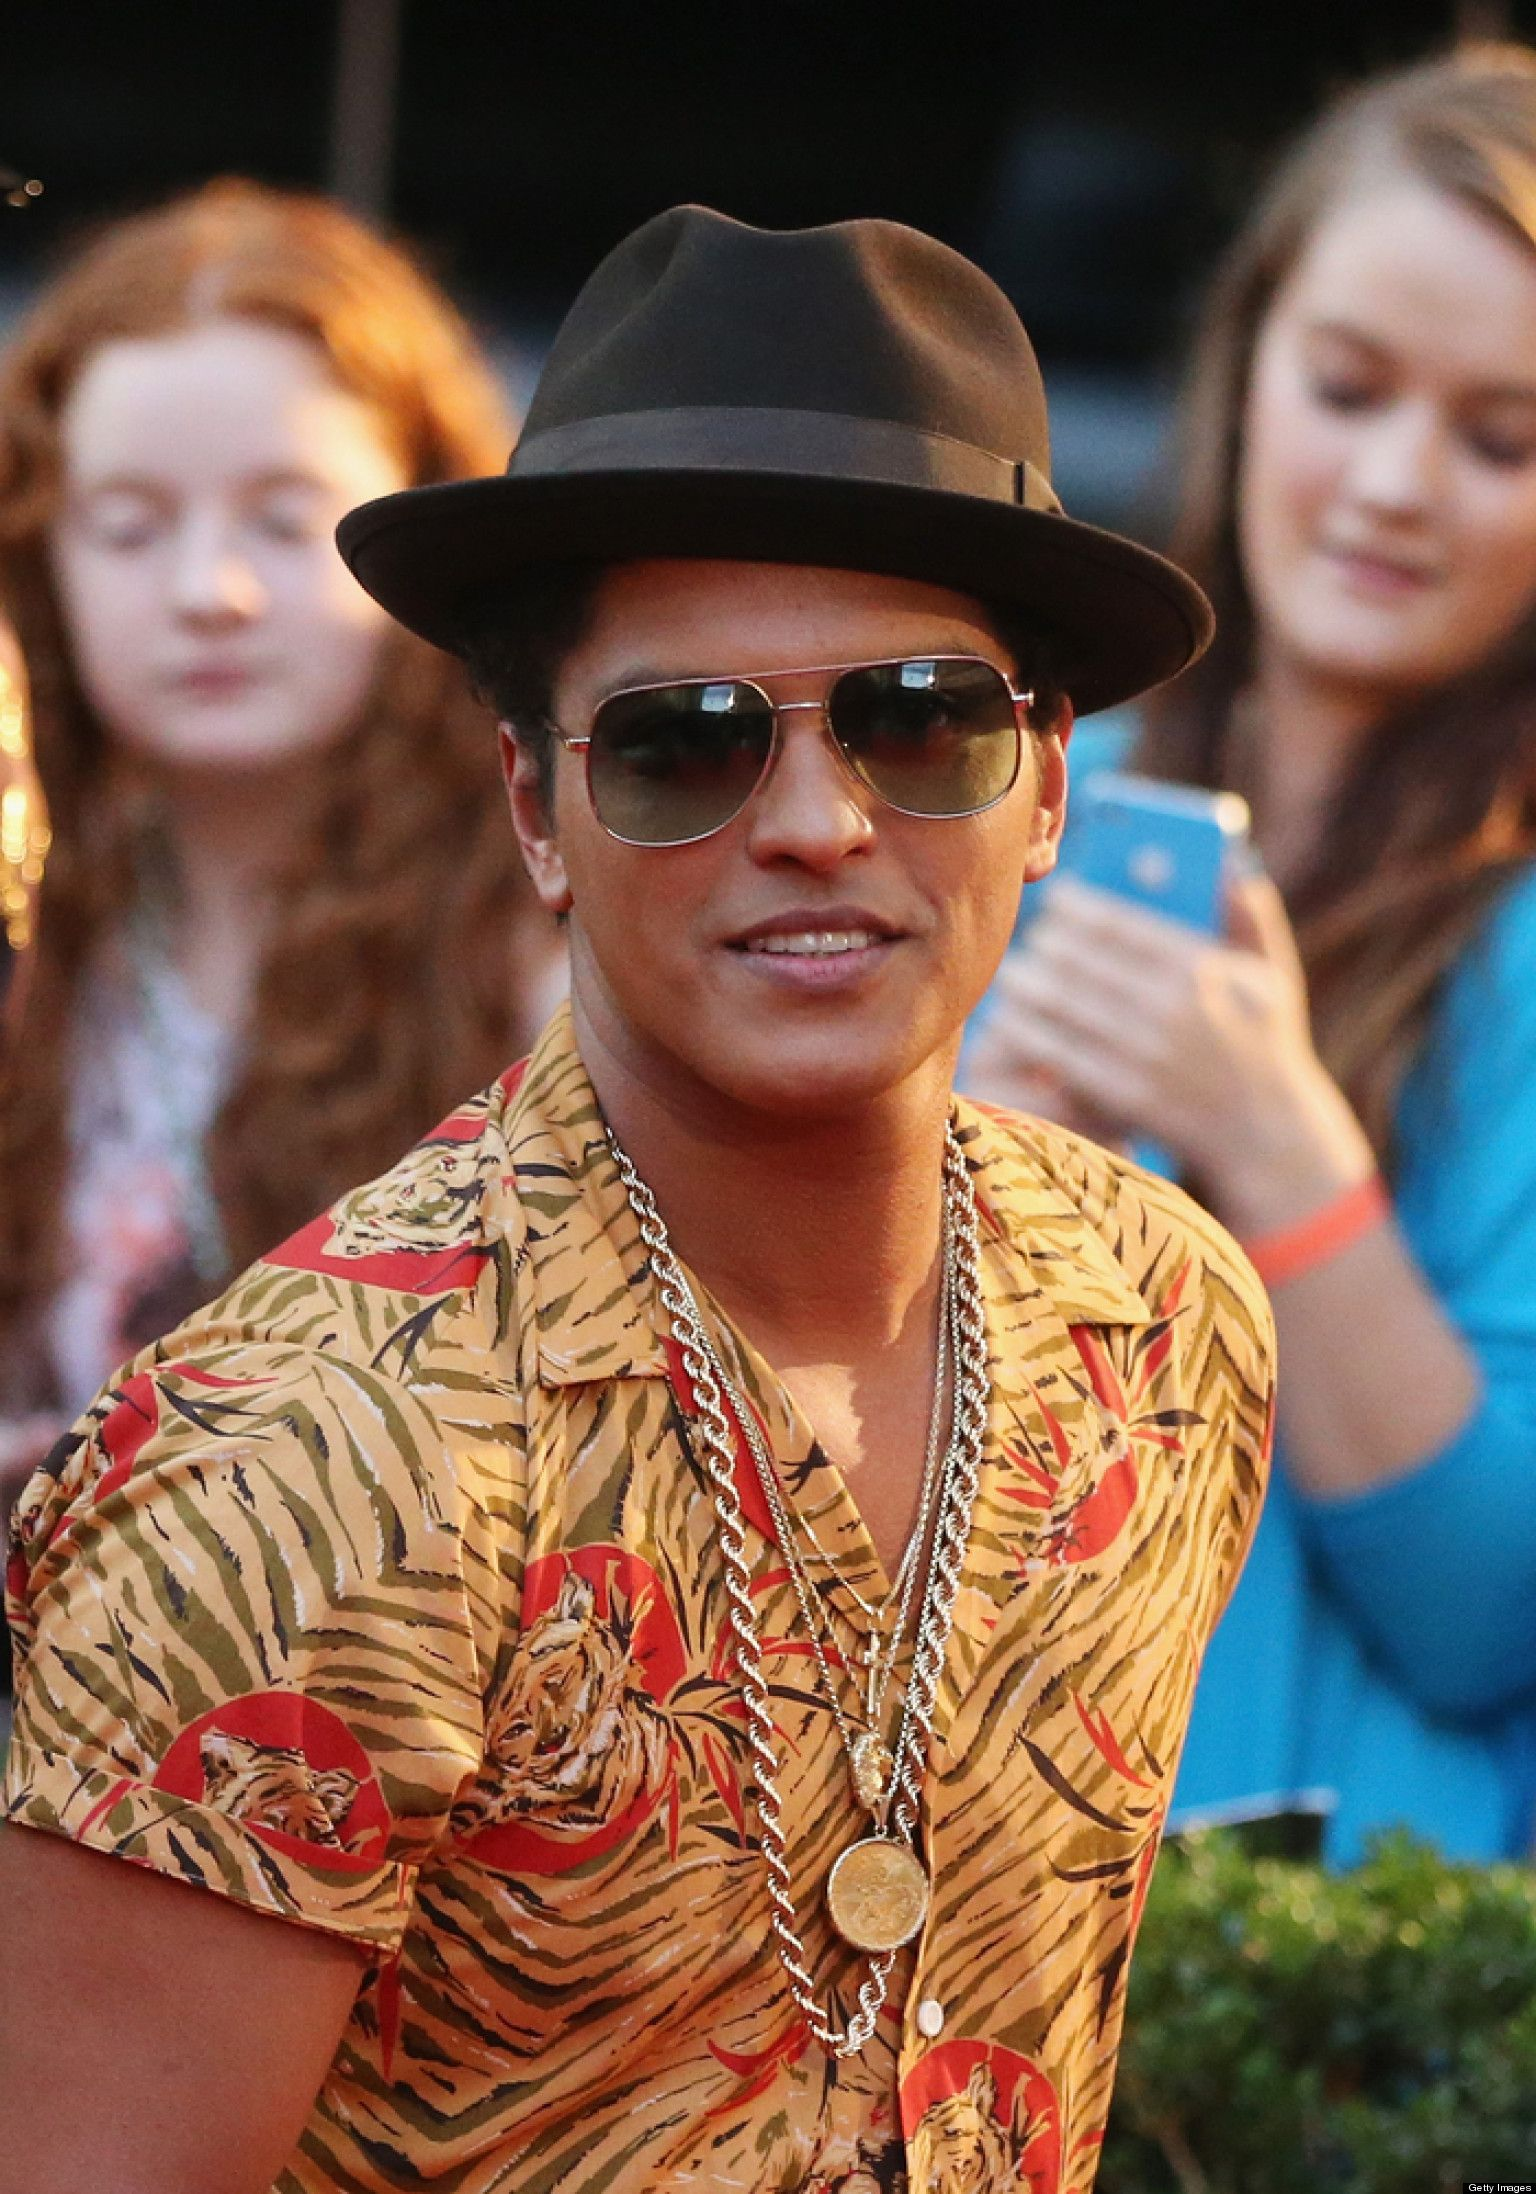 The mother of Grammywinning pop star Bruno Mars died in